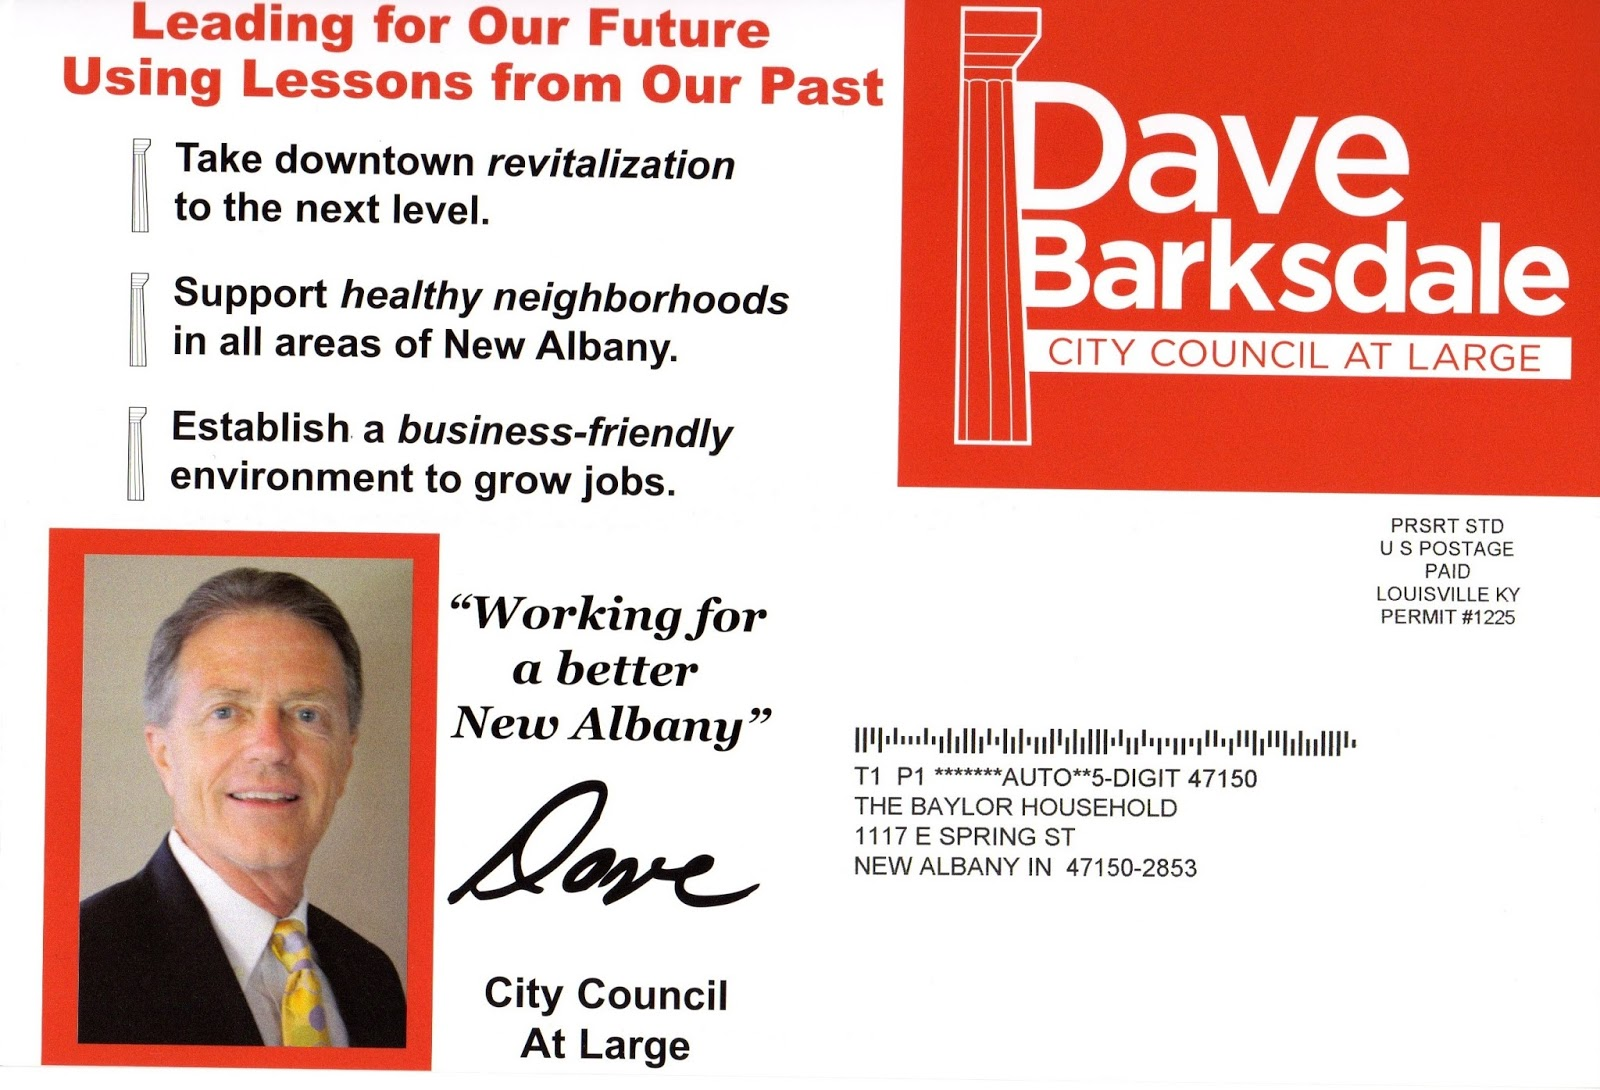 NA Confidential: Mailer Wars '15: Barksdale dares to mention